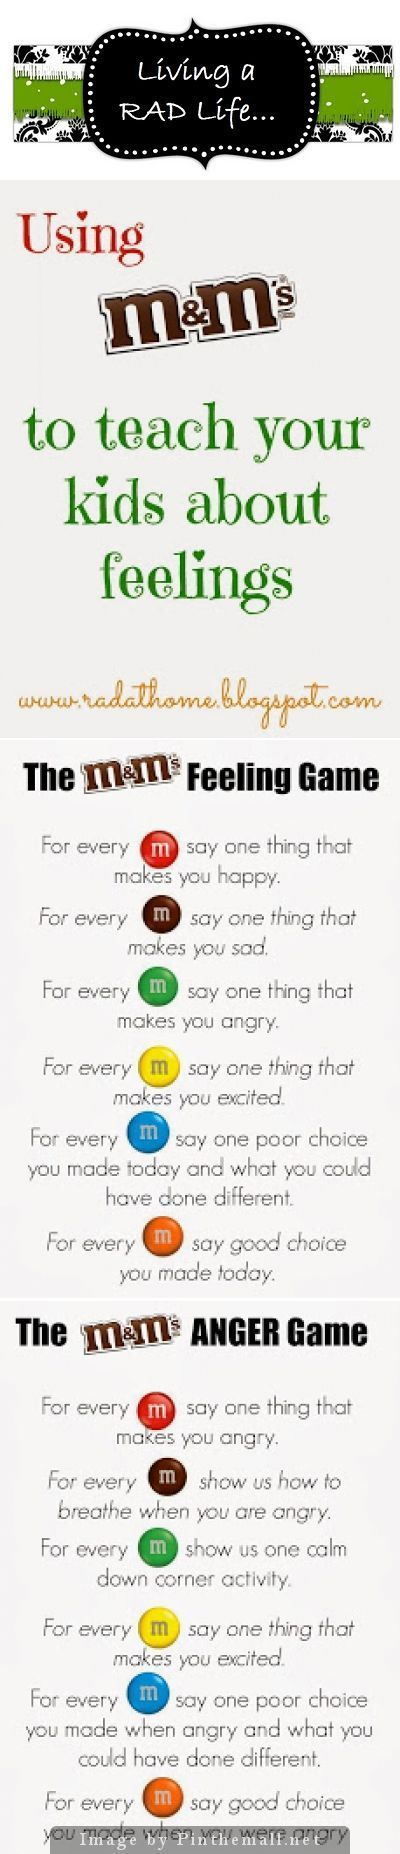 M&Ms Feelings Games- I've made two versions of the M&M Game, the first one focuses on general feelings and the second focuses on feeling Angry and calming down. You can either print a game board for the group to share or print mini boards so each person has their own. I laminated mine so we can use them again without getting them ruined. Each person will need a fun size bag of M&M's or an assortment of 10 or so M&M's.: